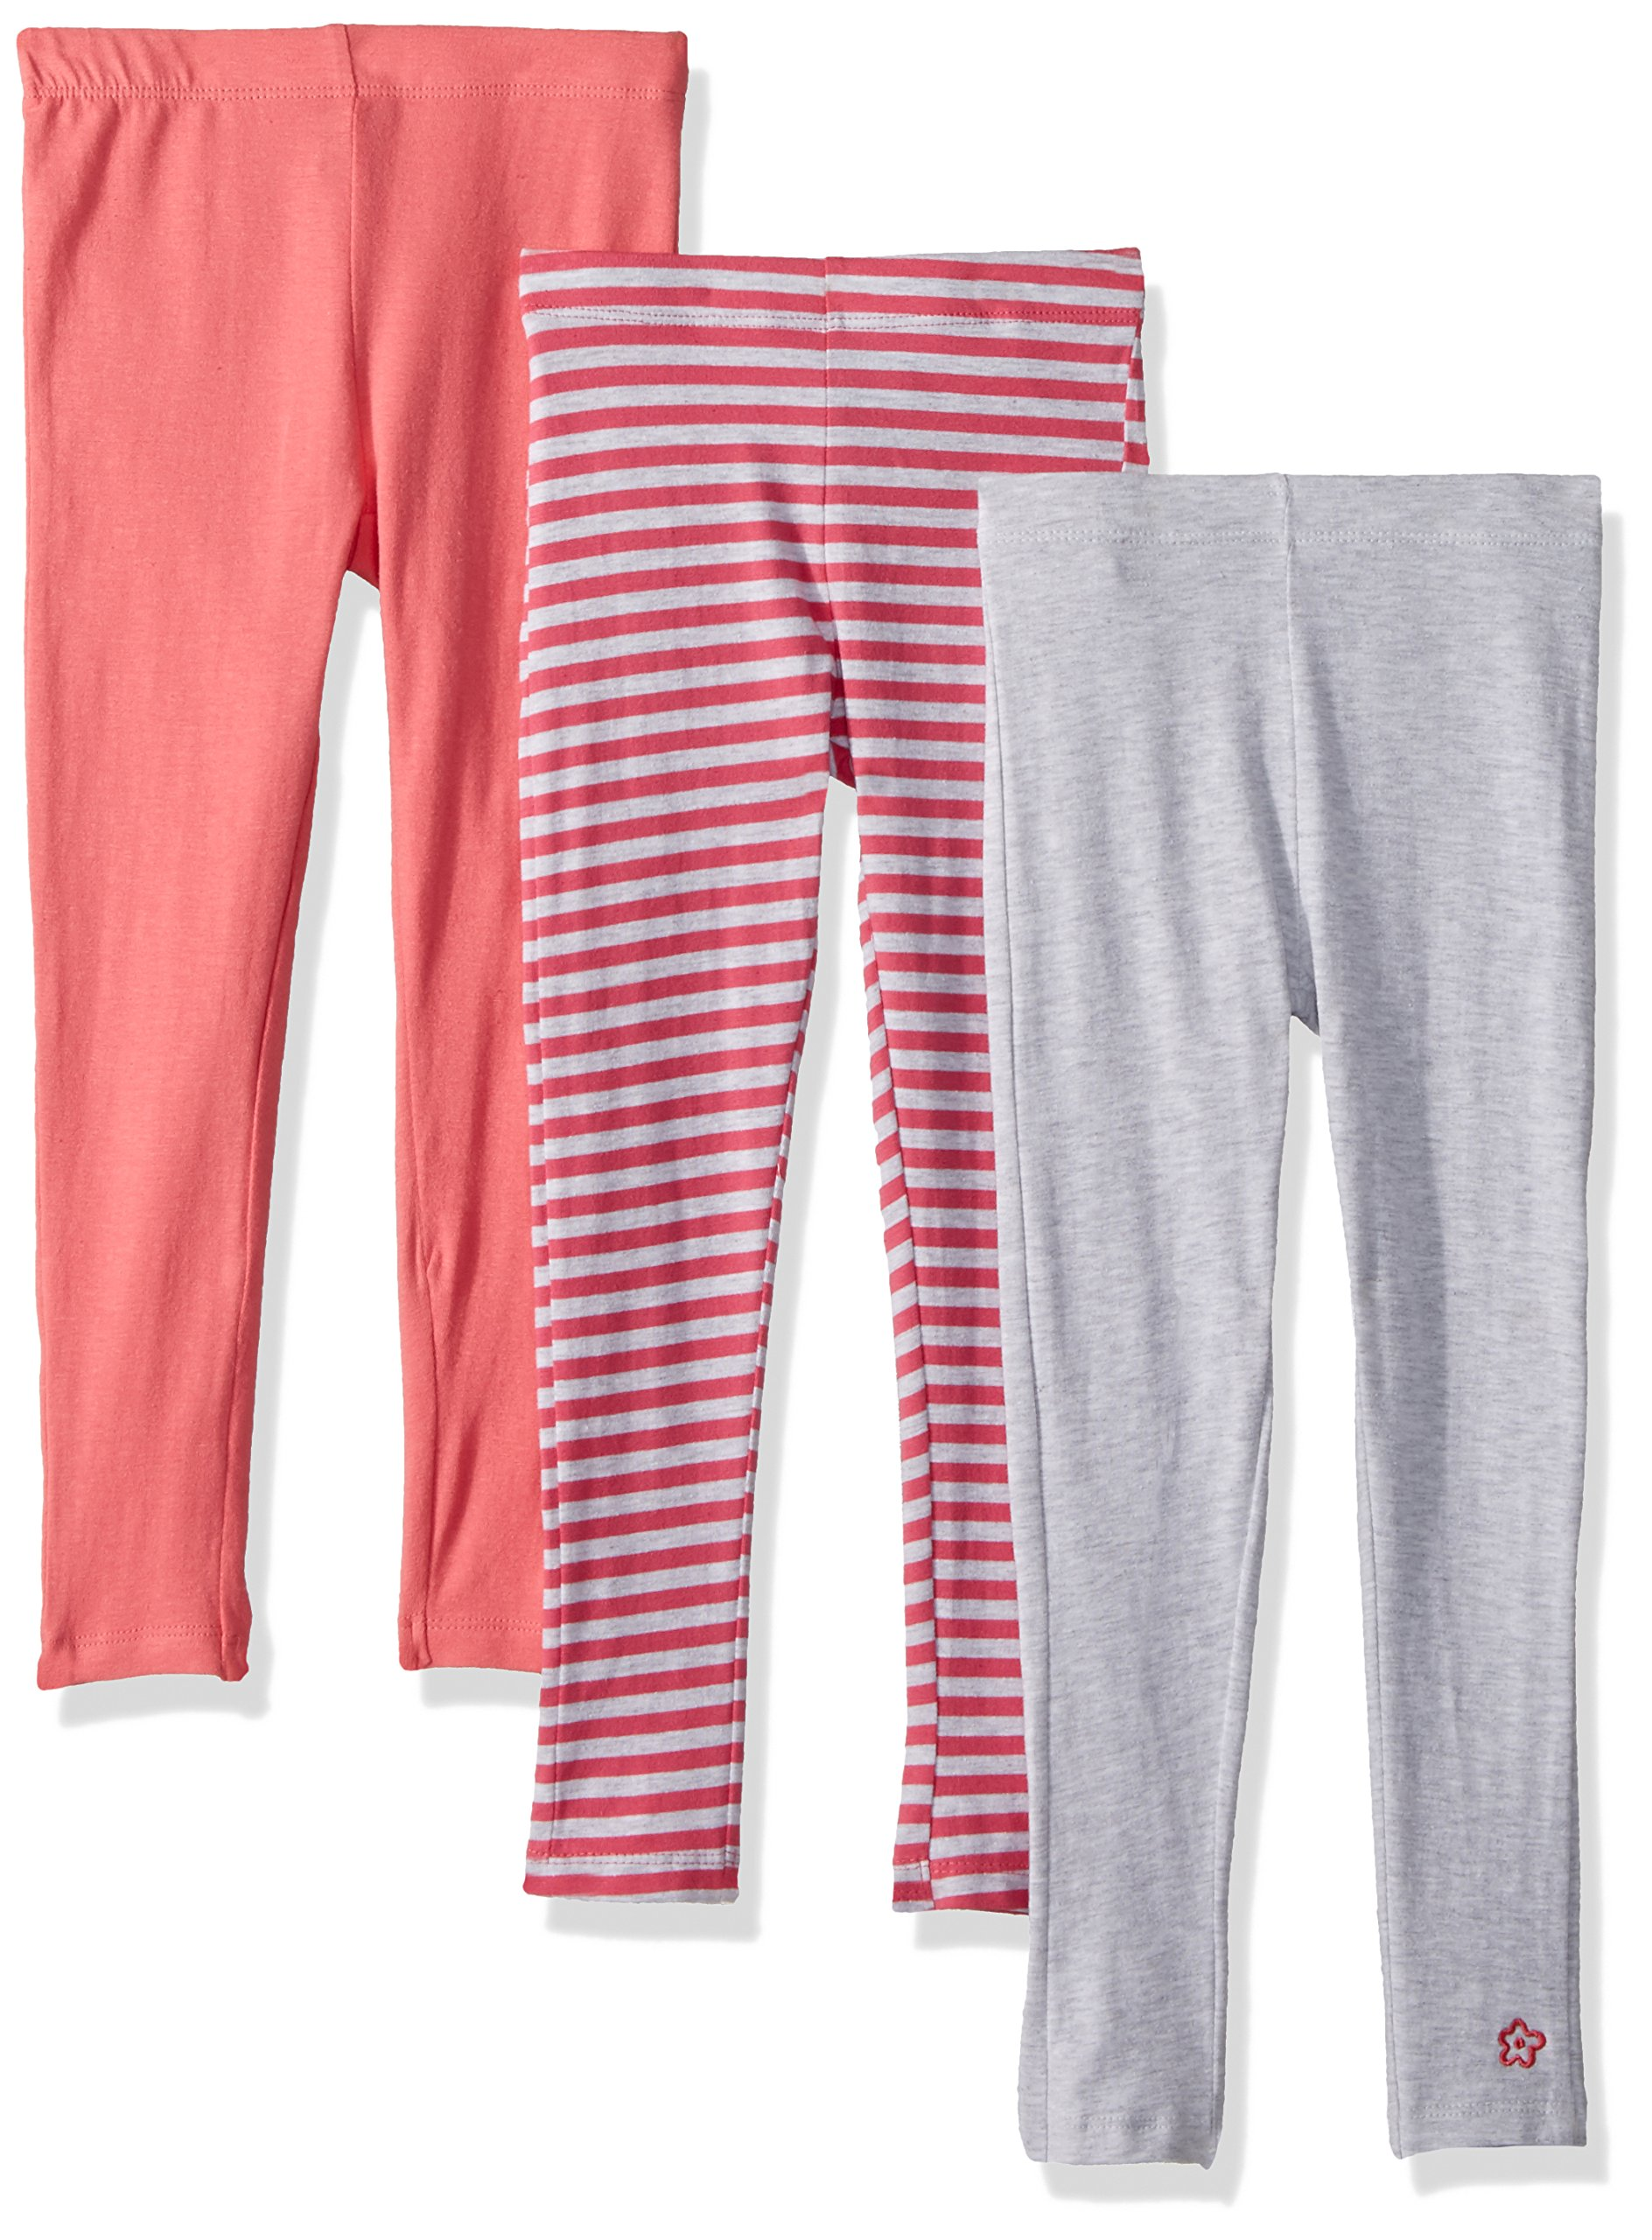 Limited Too Big Girls' 3 Pack Jesey Spandex Legging, Camellia Rose Stripe Light Heather Gray Solid Knit Multi Print, 14/16